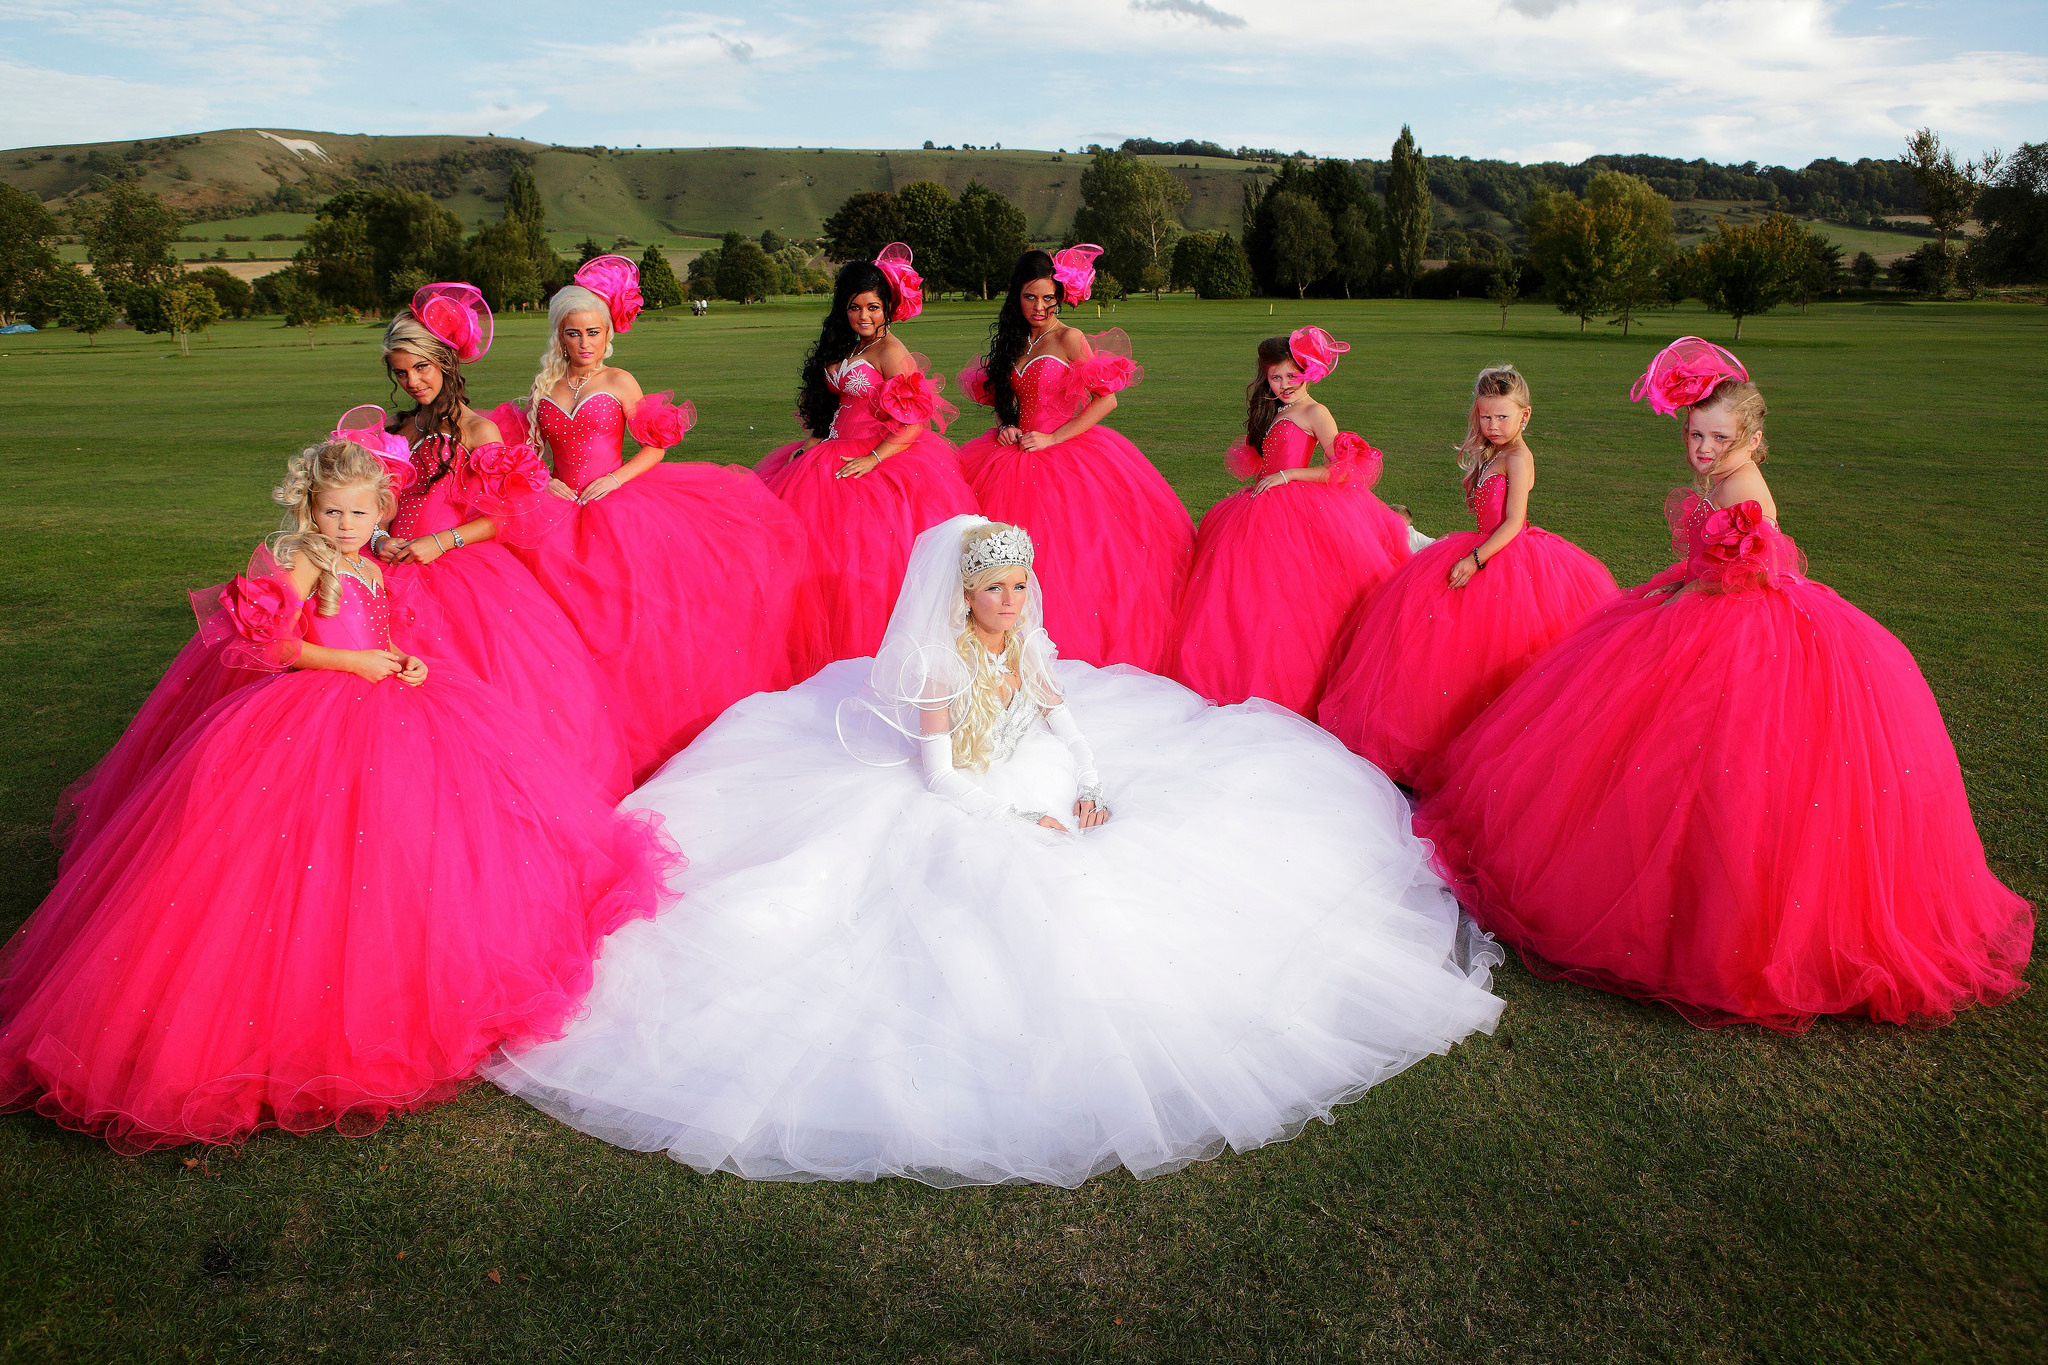 Glitzy, Glamorous, and GIGANTIC Gypsy Weddings - Lifelong Wedding ...